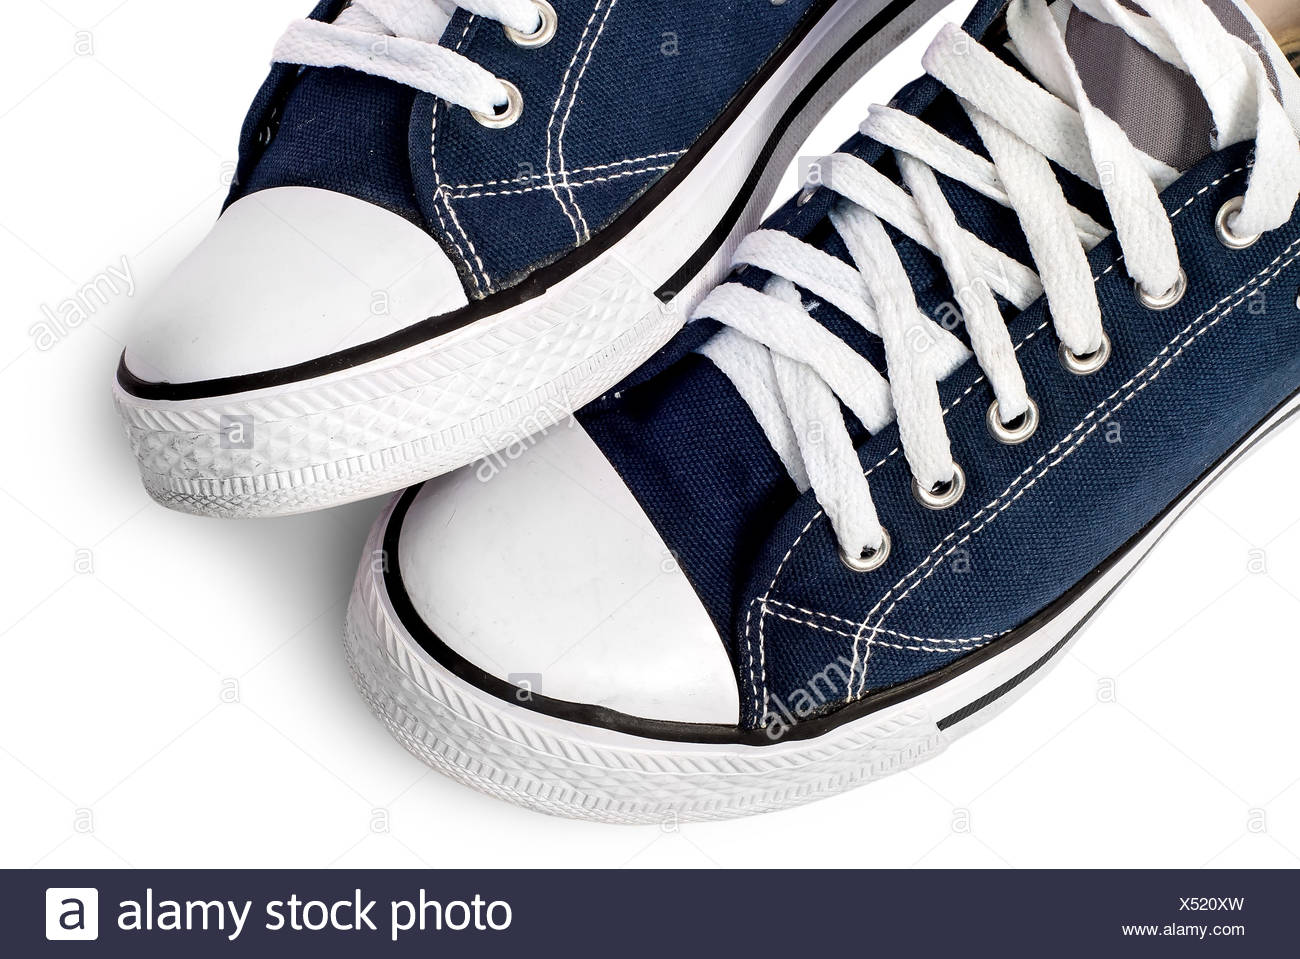 Closeup of dark blue athletic shoes - Stock Image